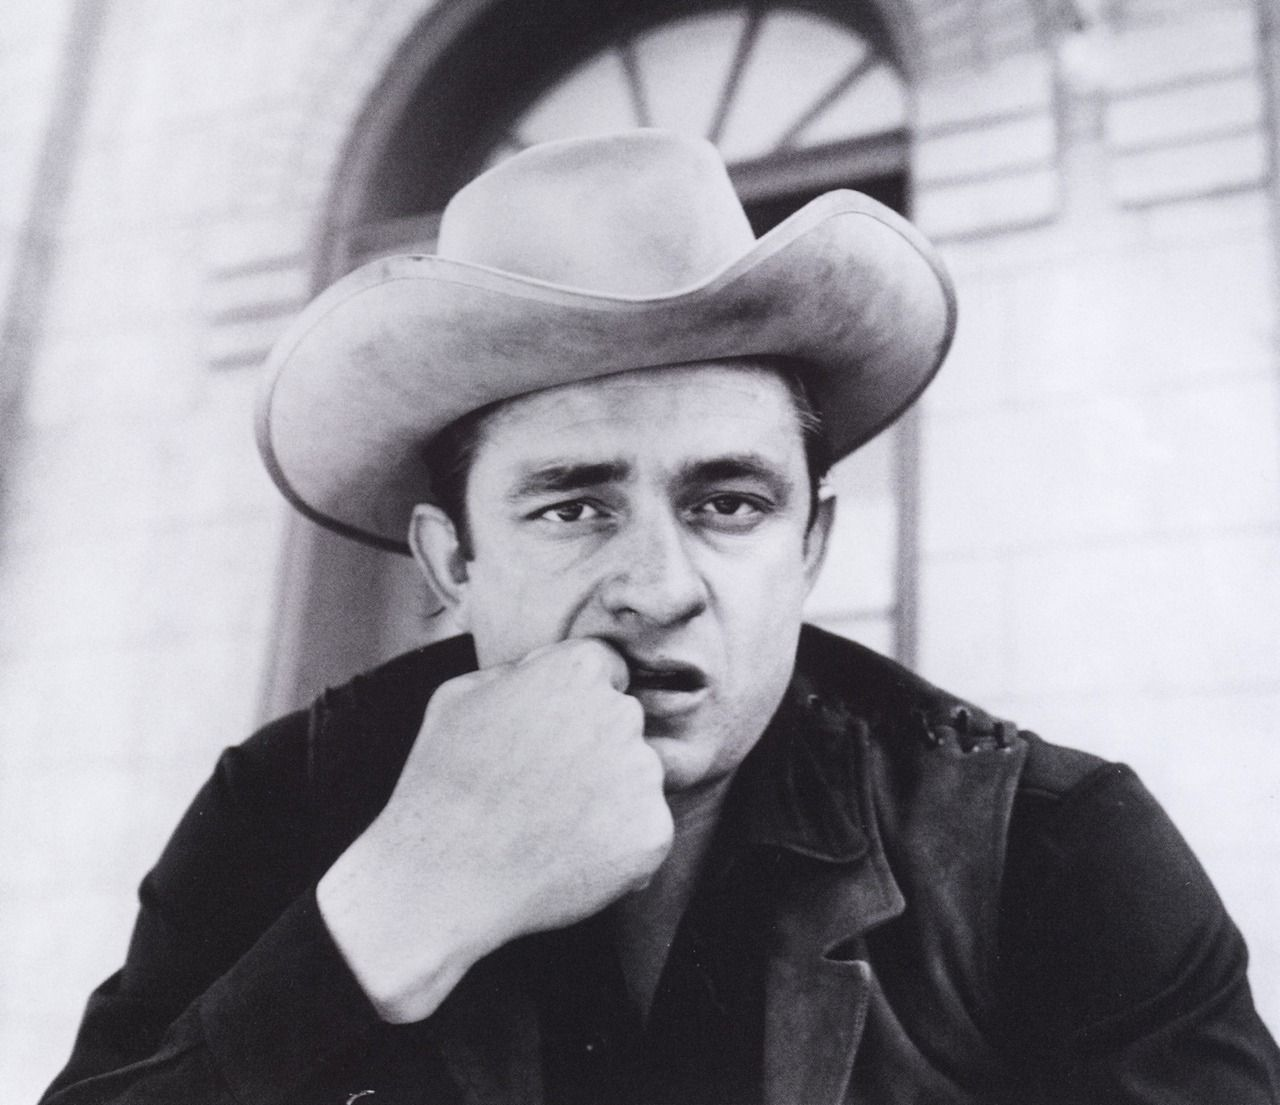 Cash---handsome he was | Frame It | Pinterest | Johnny cash, Country ...